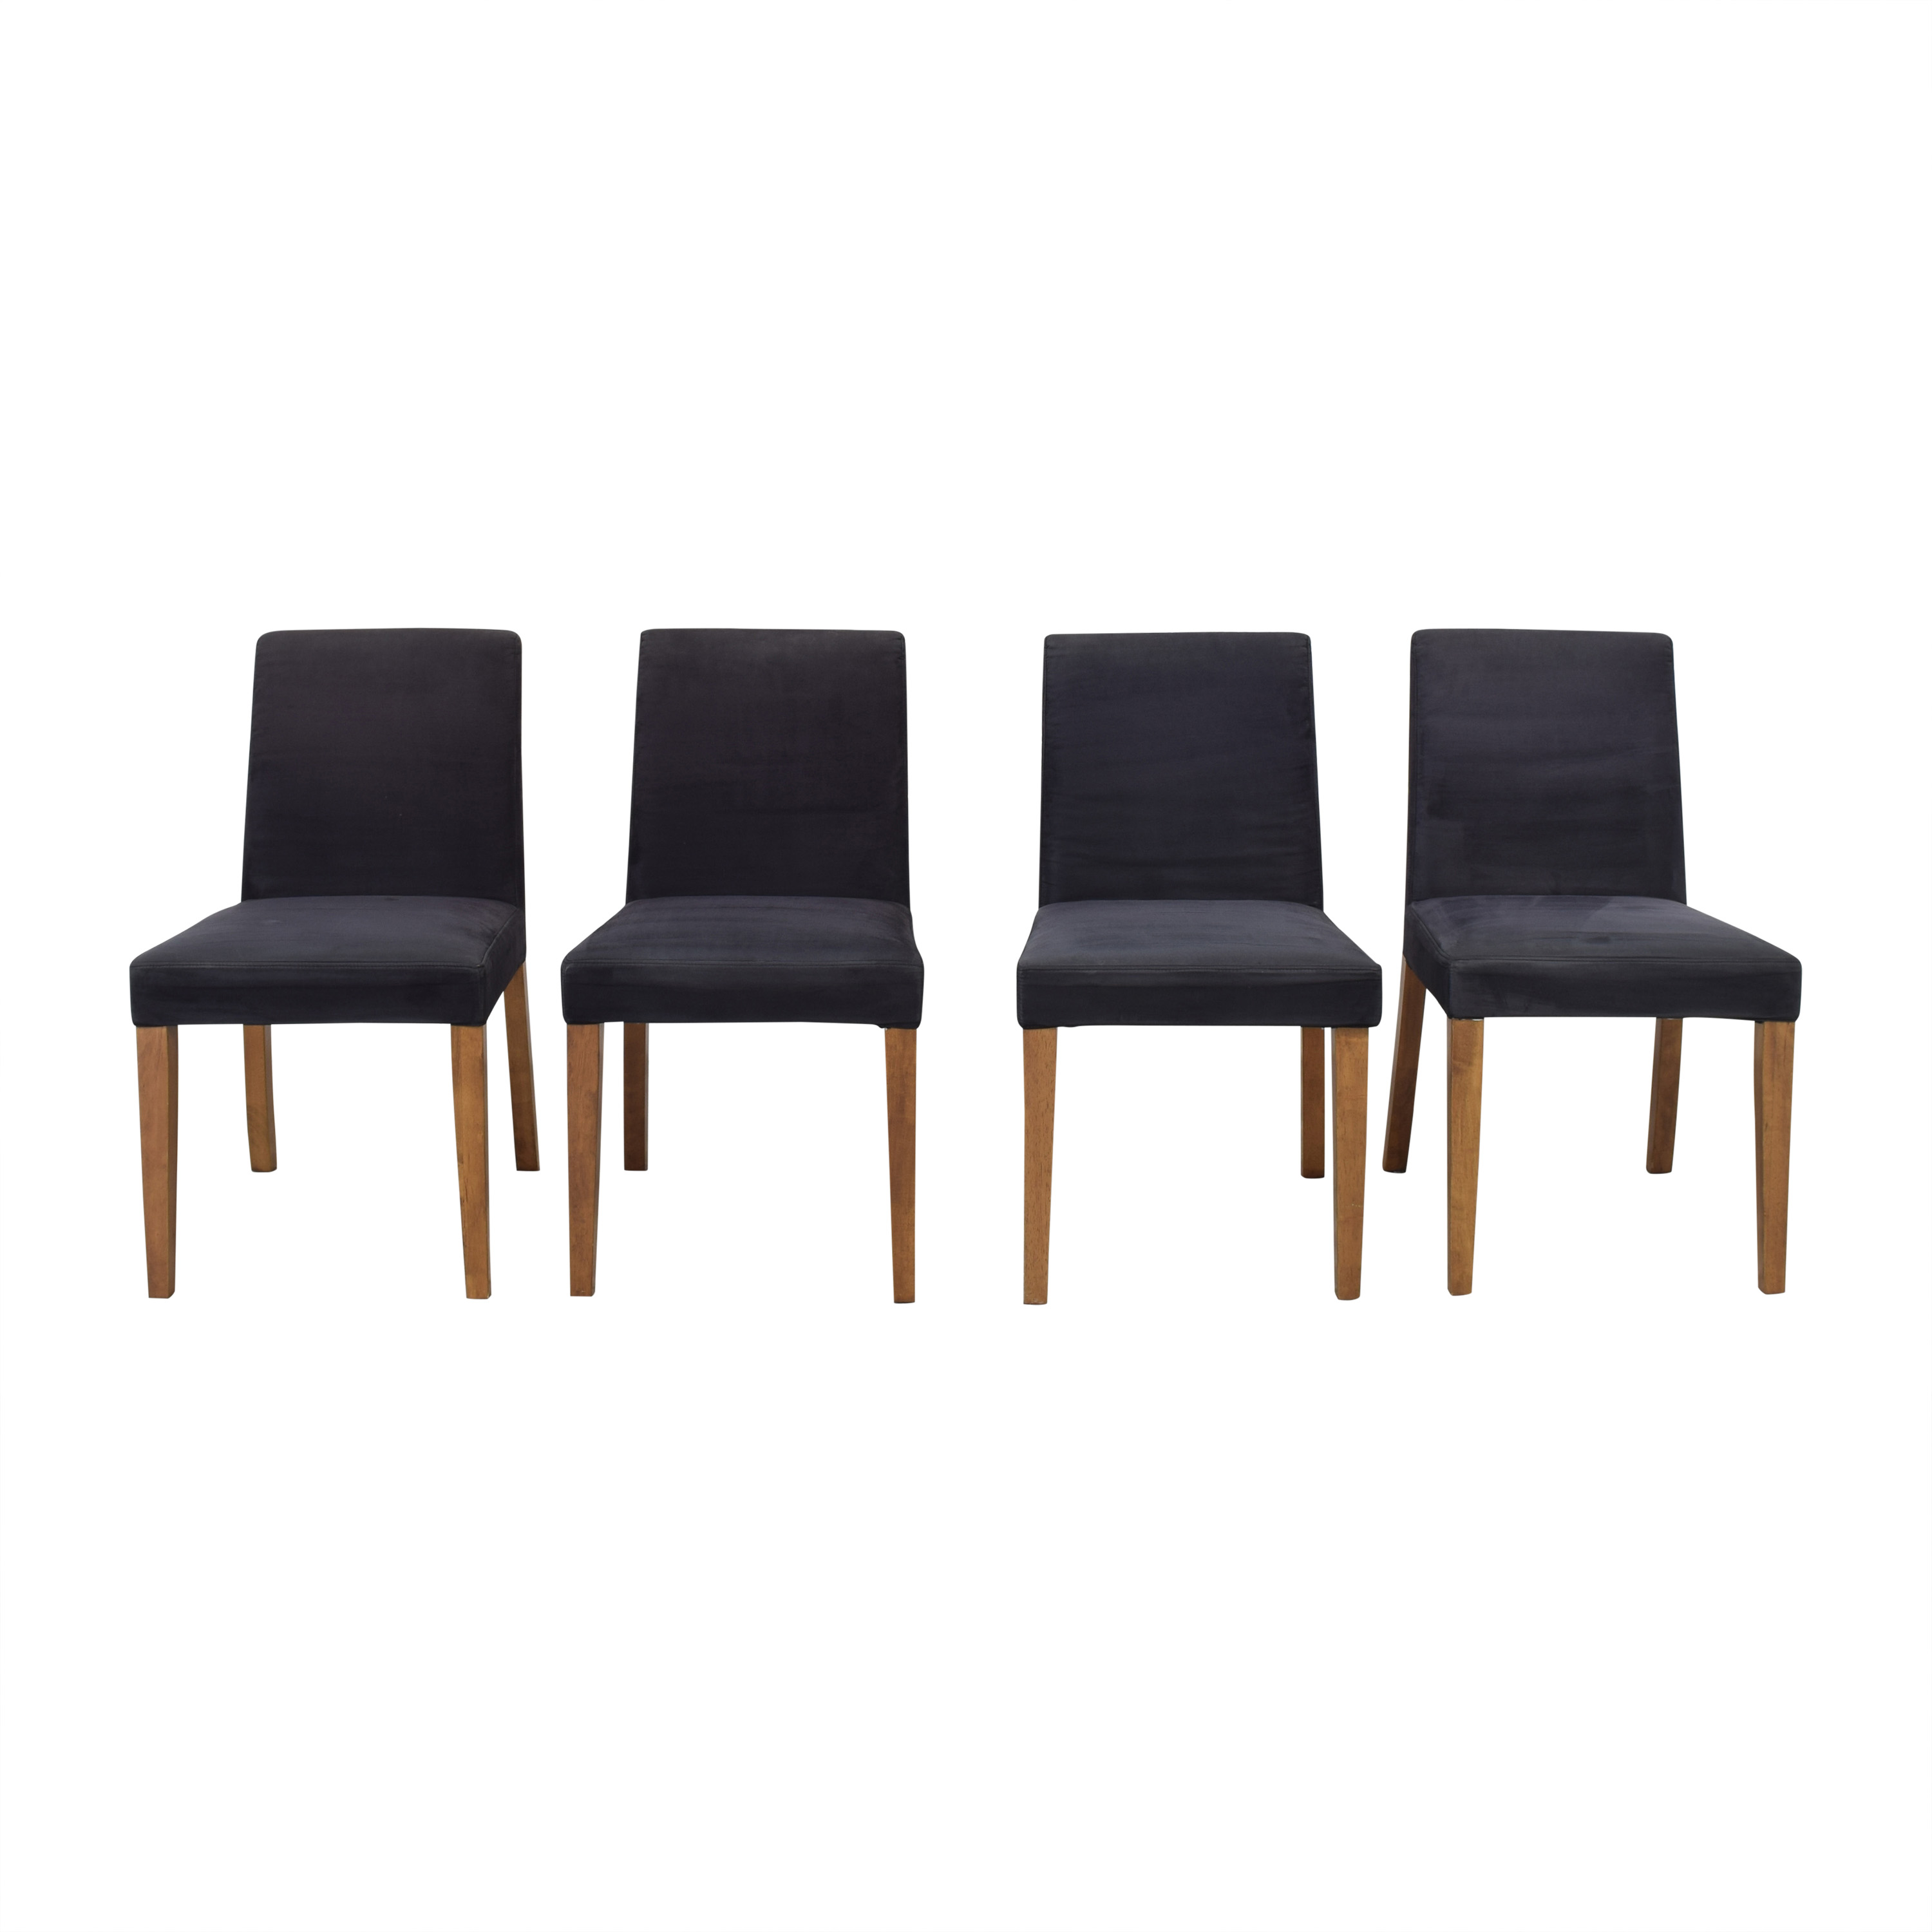 BoConcept BoConcept Cantono Upholstered Chairs